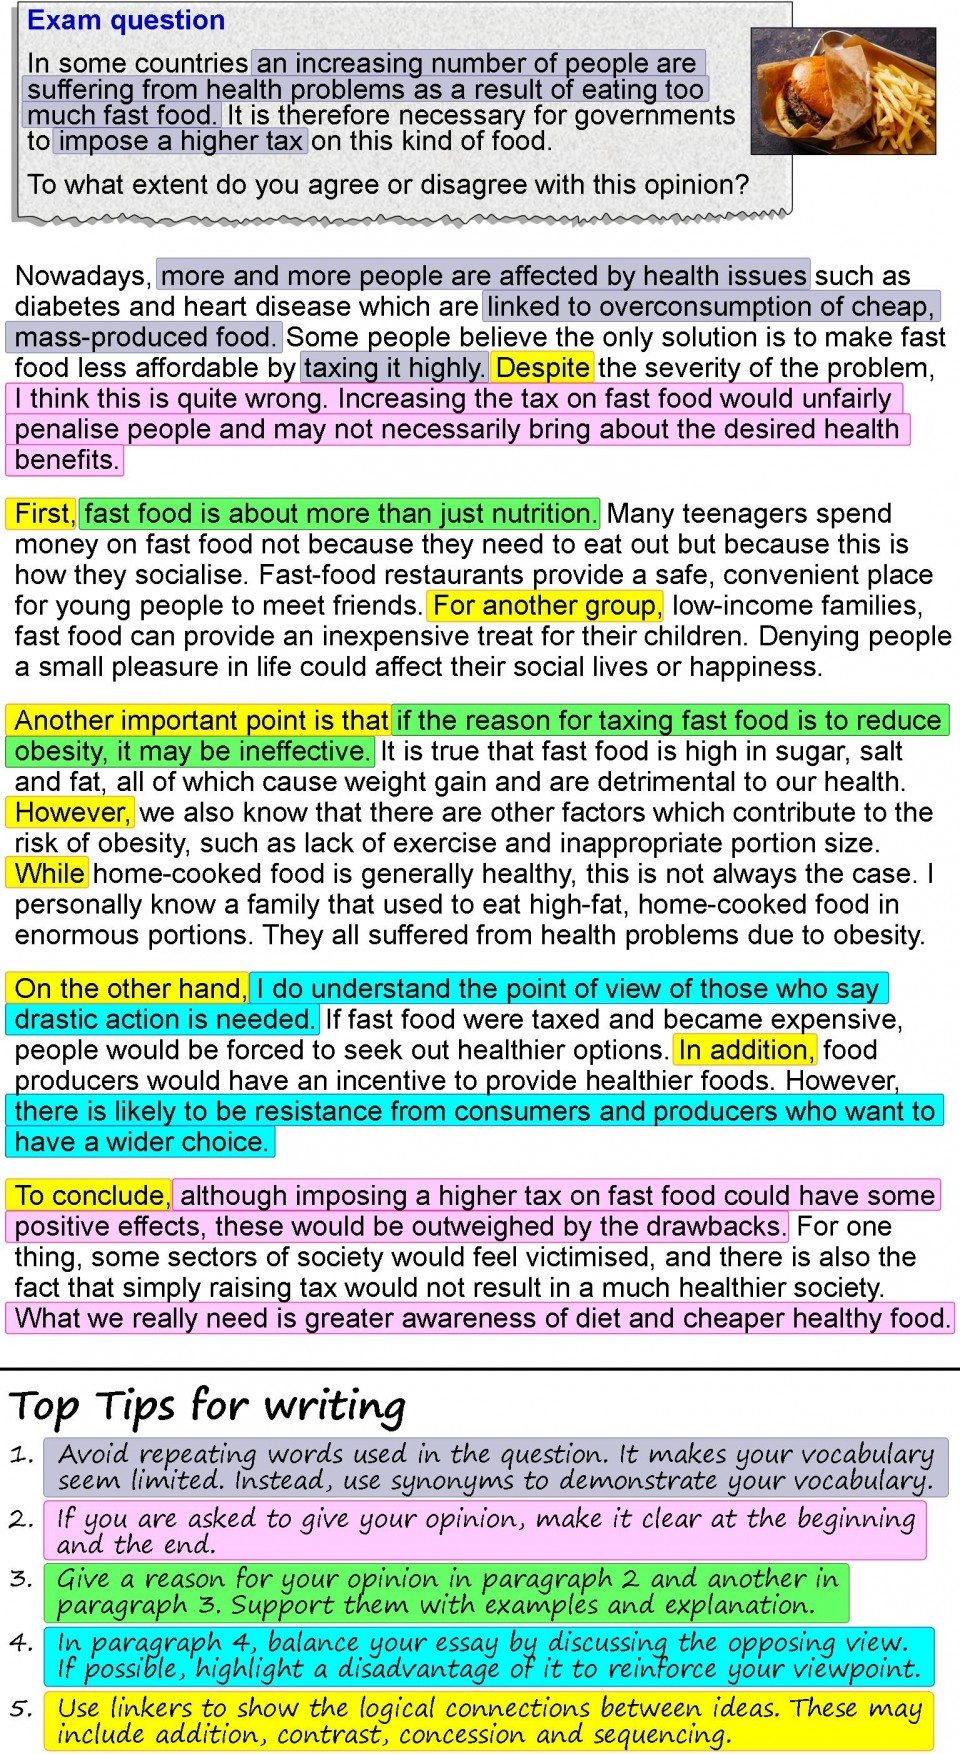 001 Opinion Essay About Fast Food Example An 4 Unbelievable British Council 960